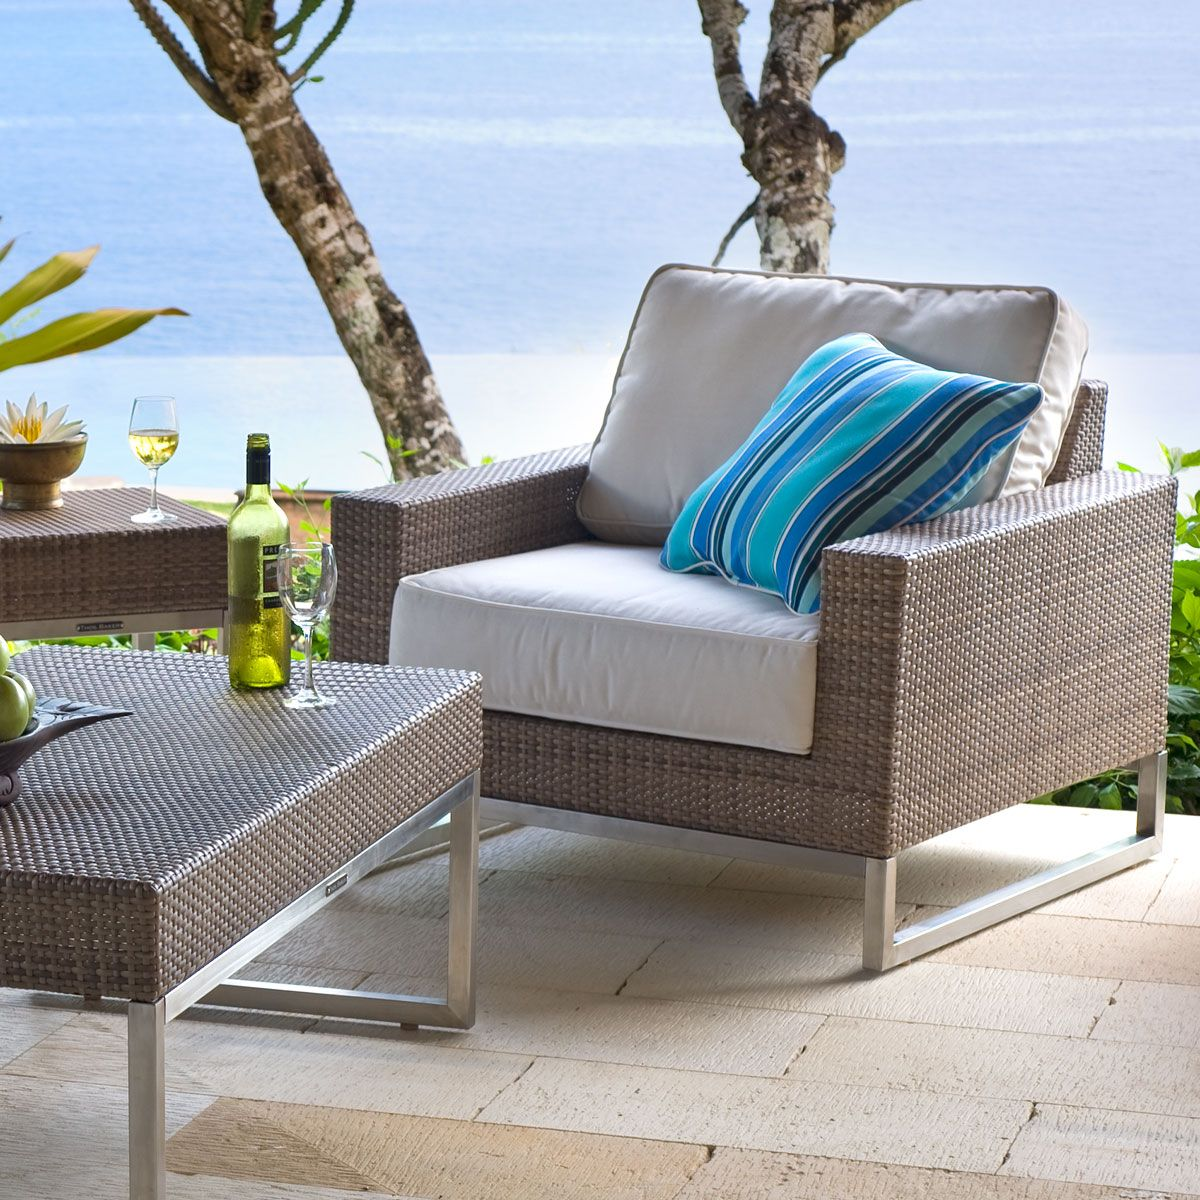 Contemporary Wicker Club Chair Palms Collection Thos Baker Wickerchair Outdoorfurniture Wickerfurniture